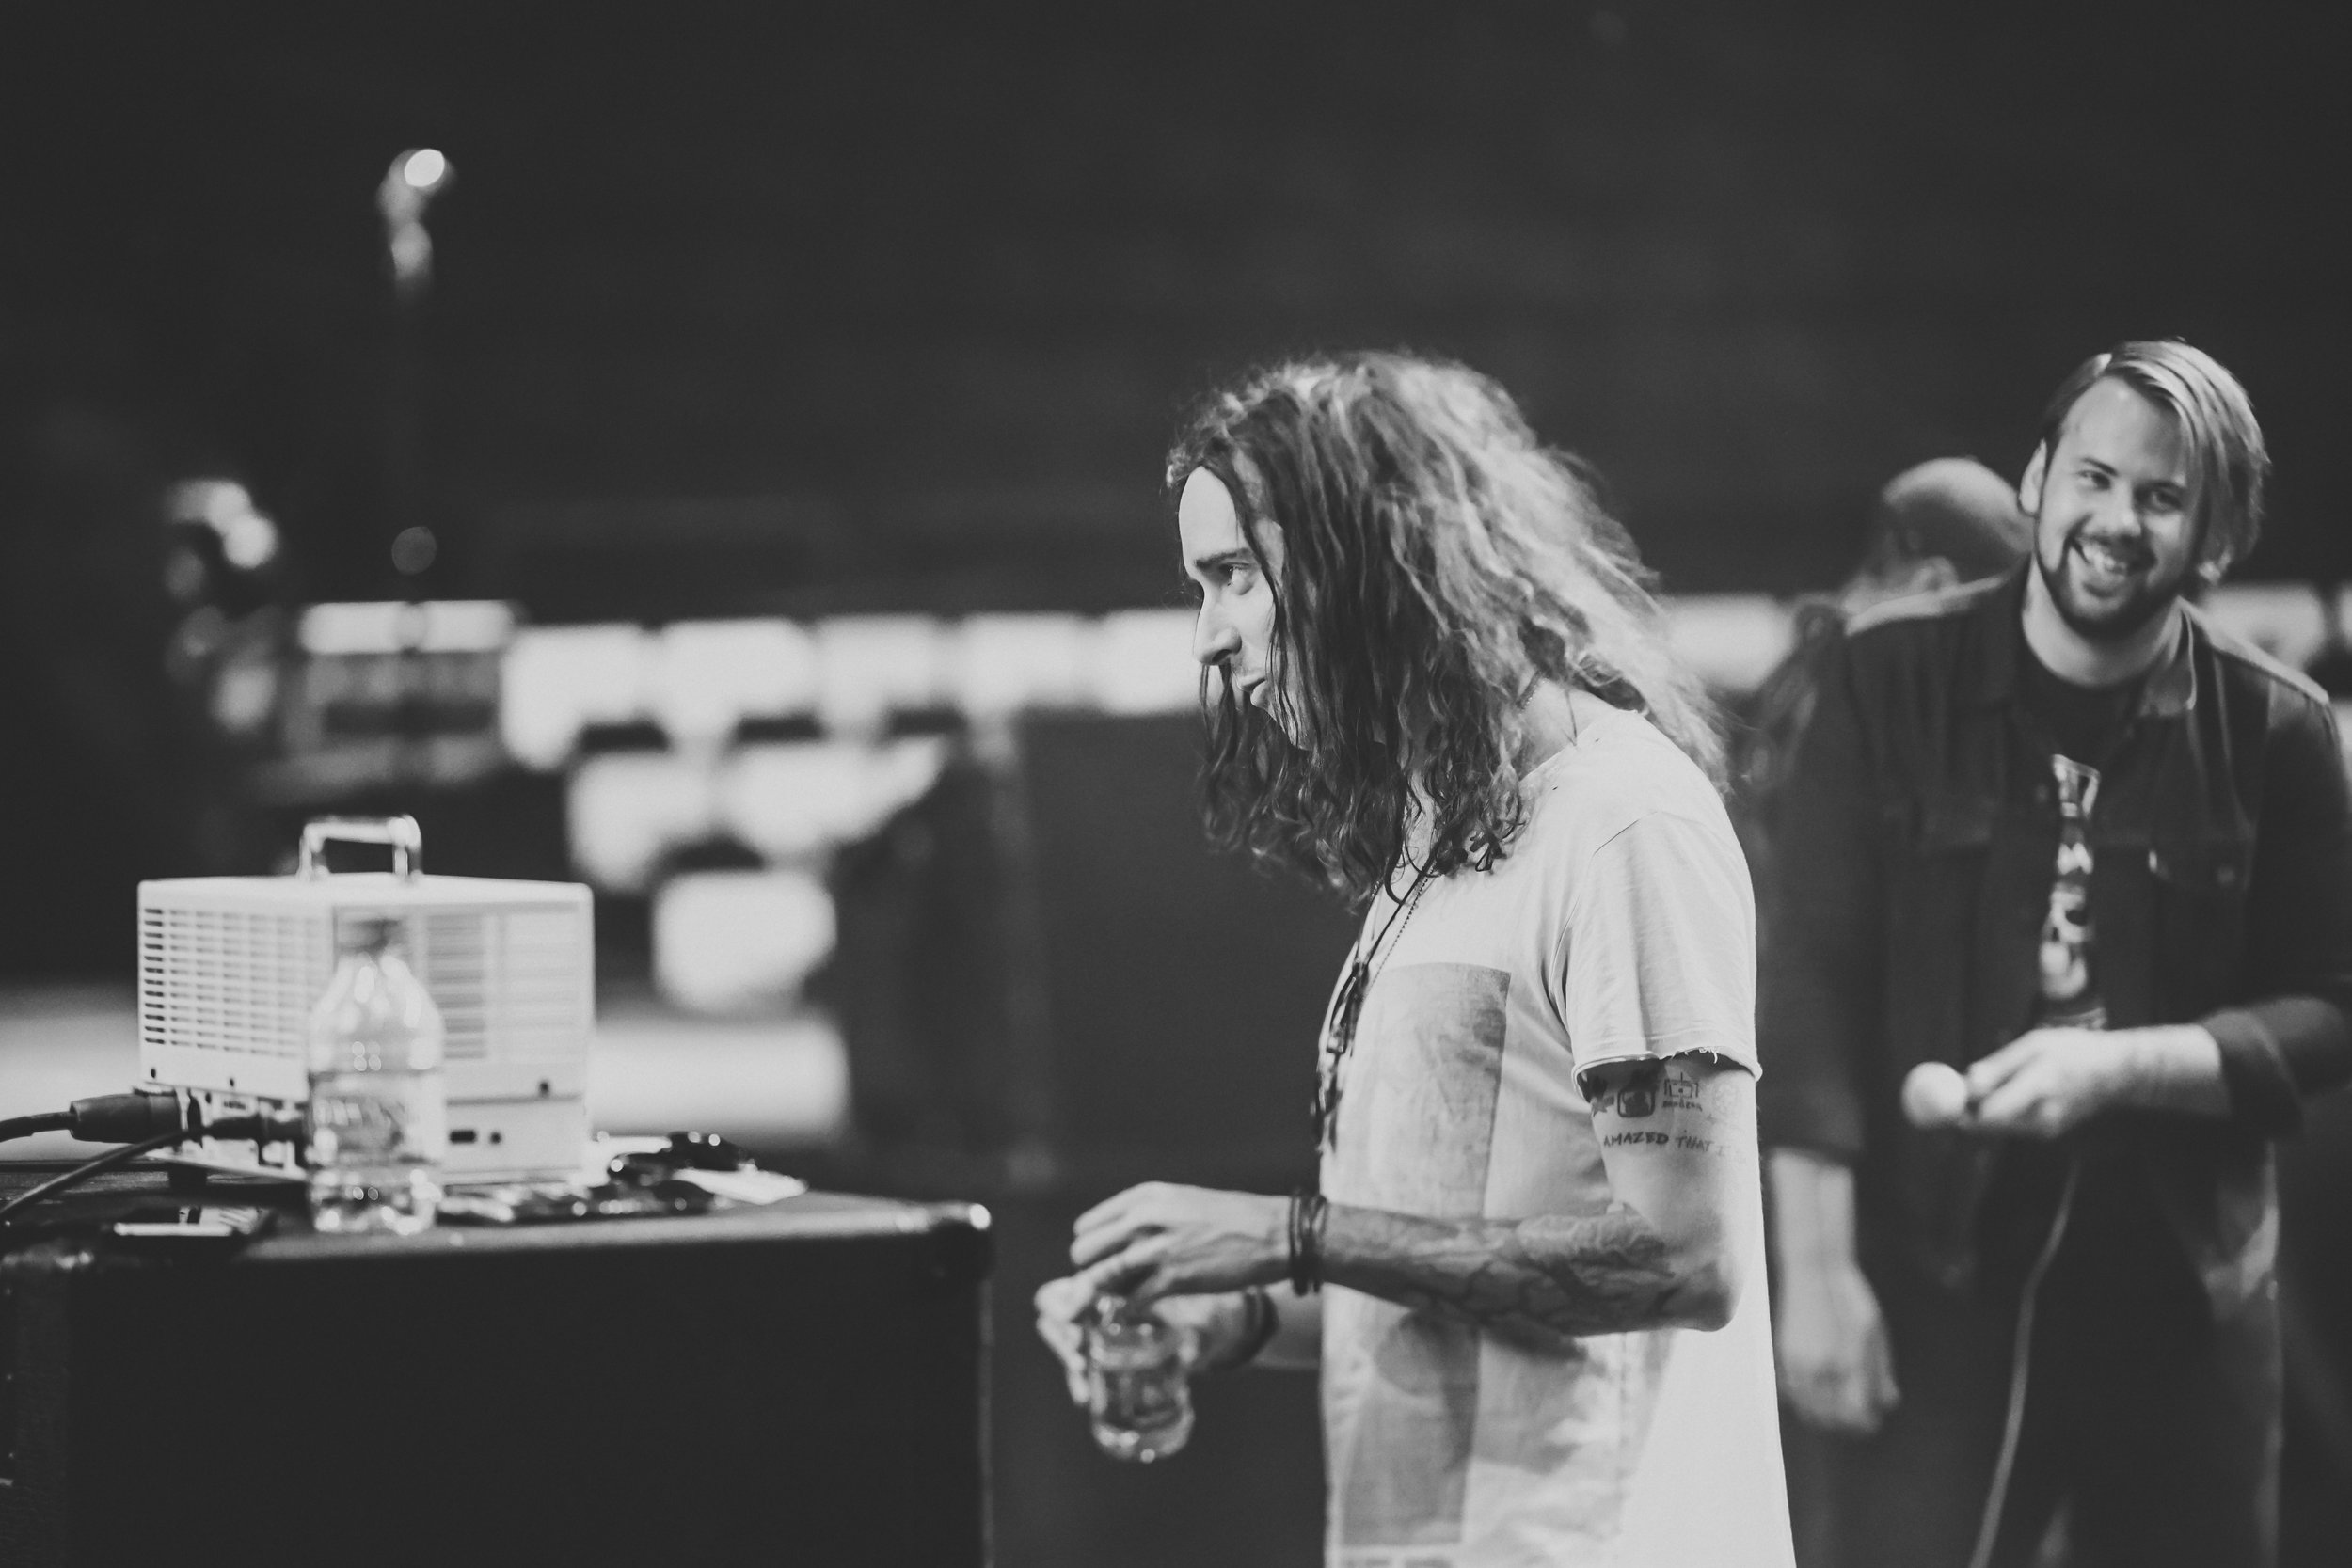 Spencer of Underoath at rehersals with Beartooth at the APMAS // Columbus, OH